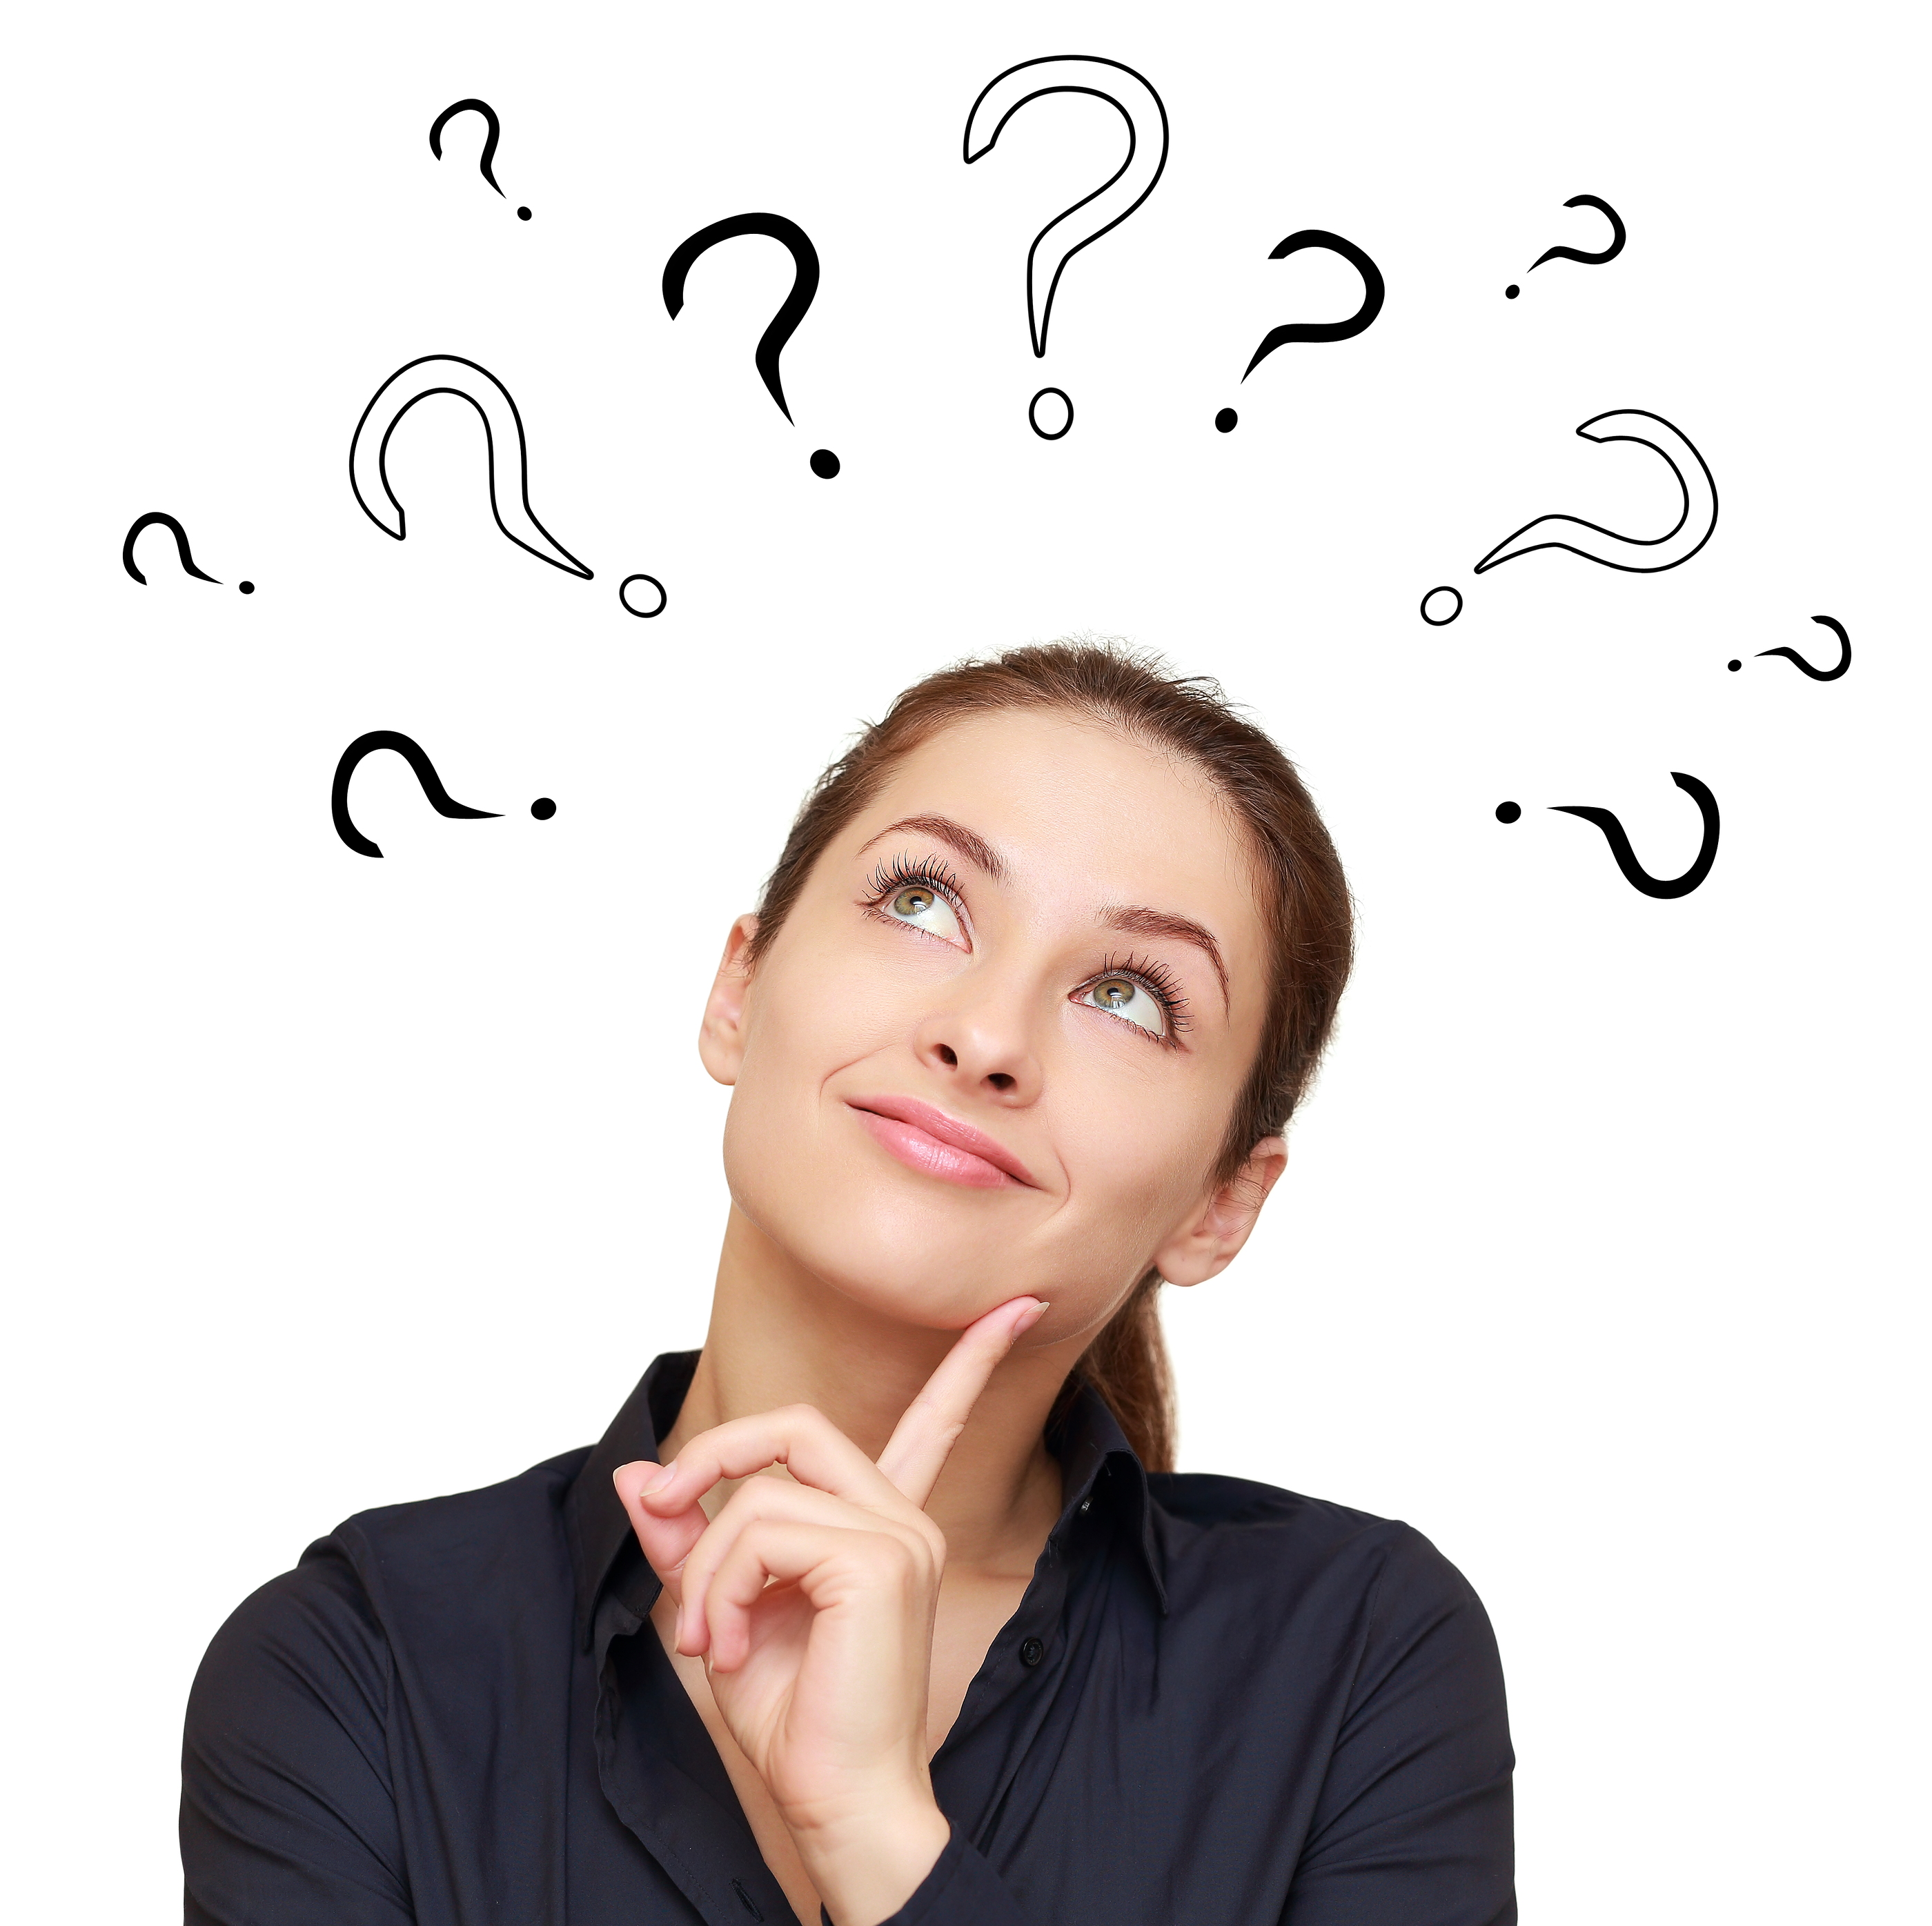 Woman smiling with question marks above her head